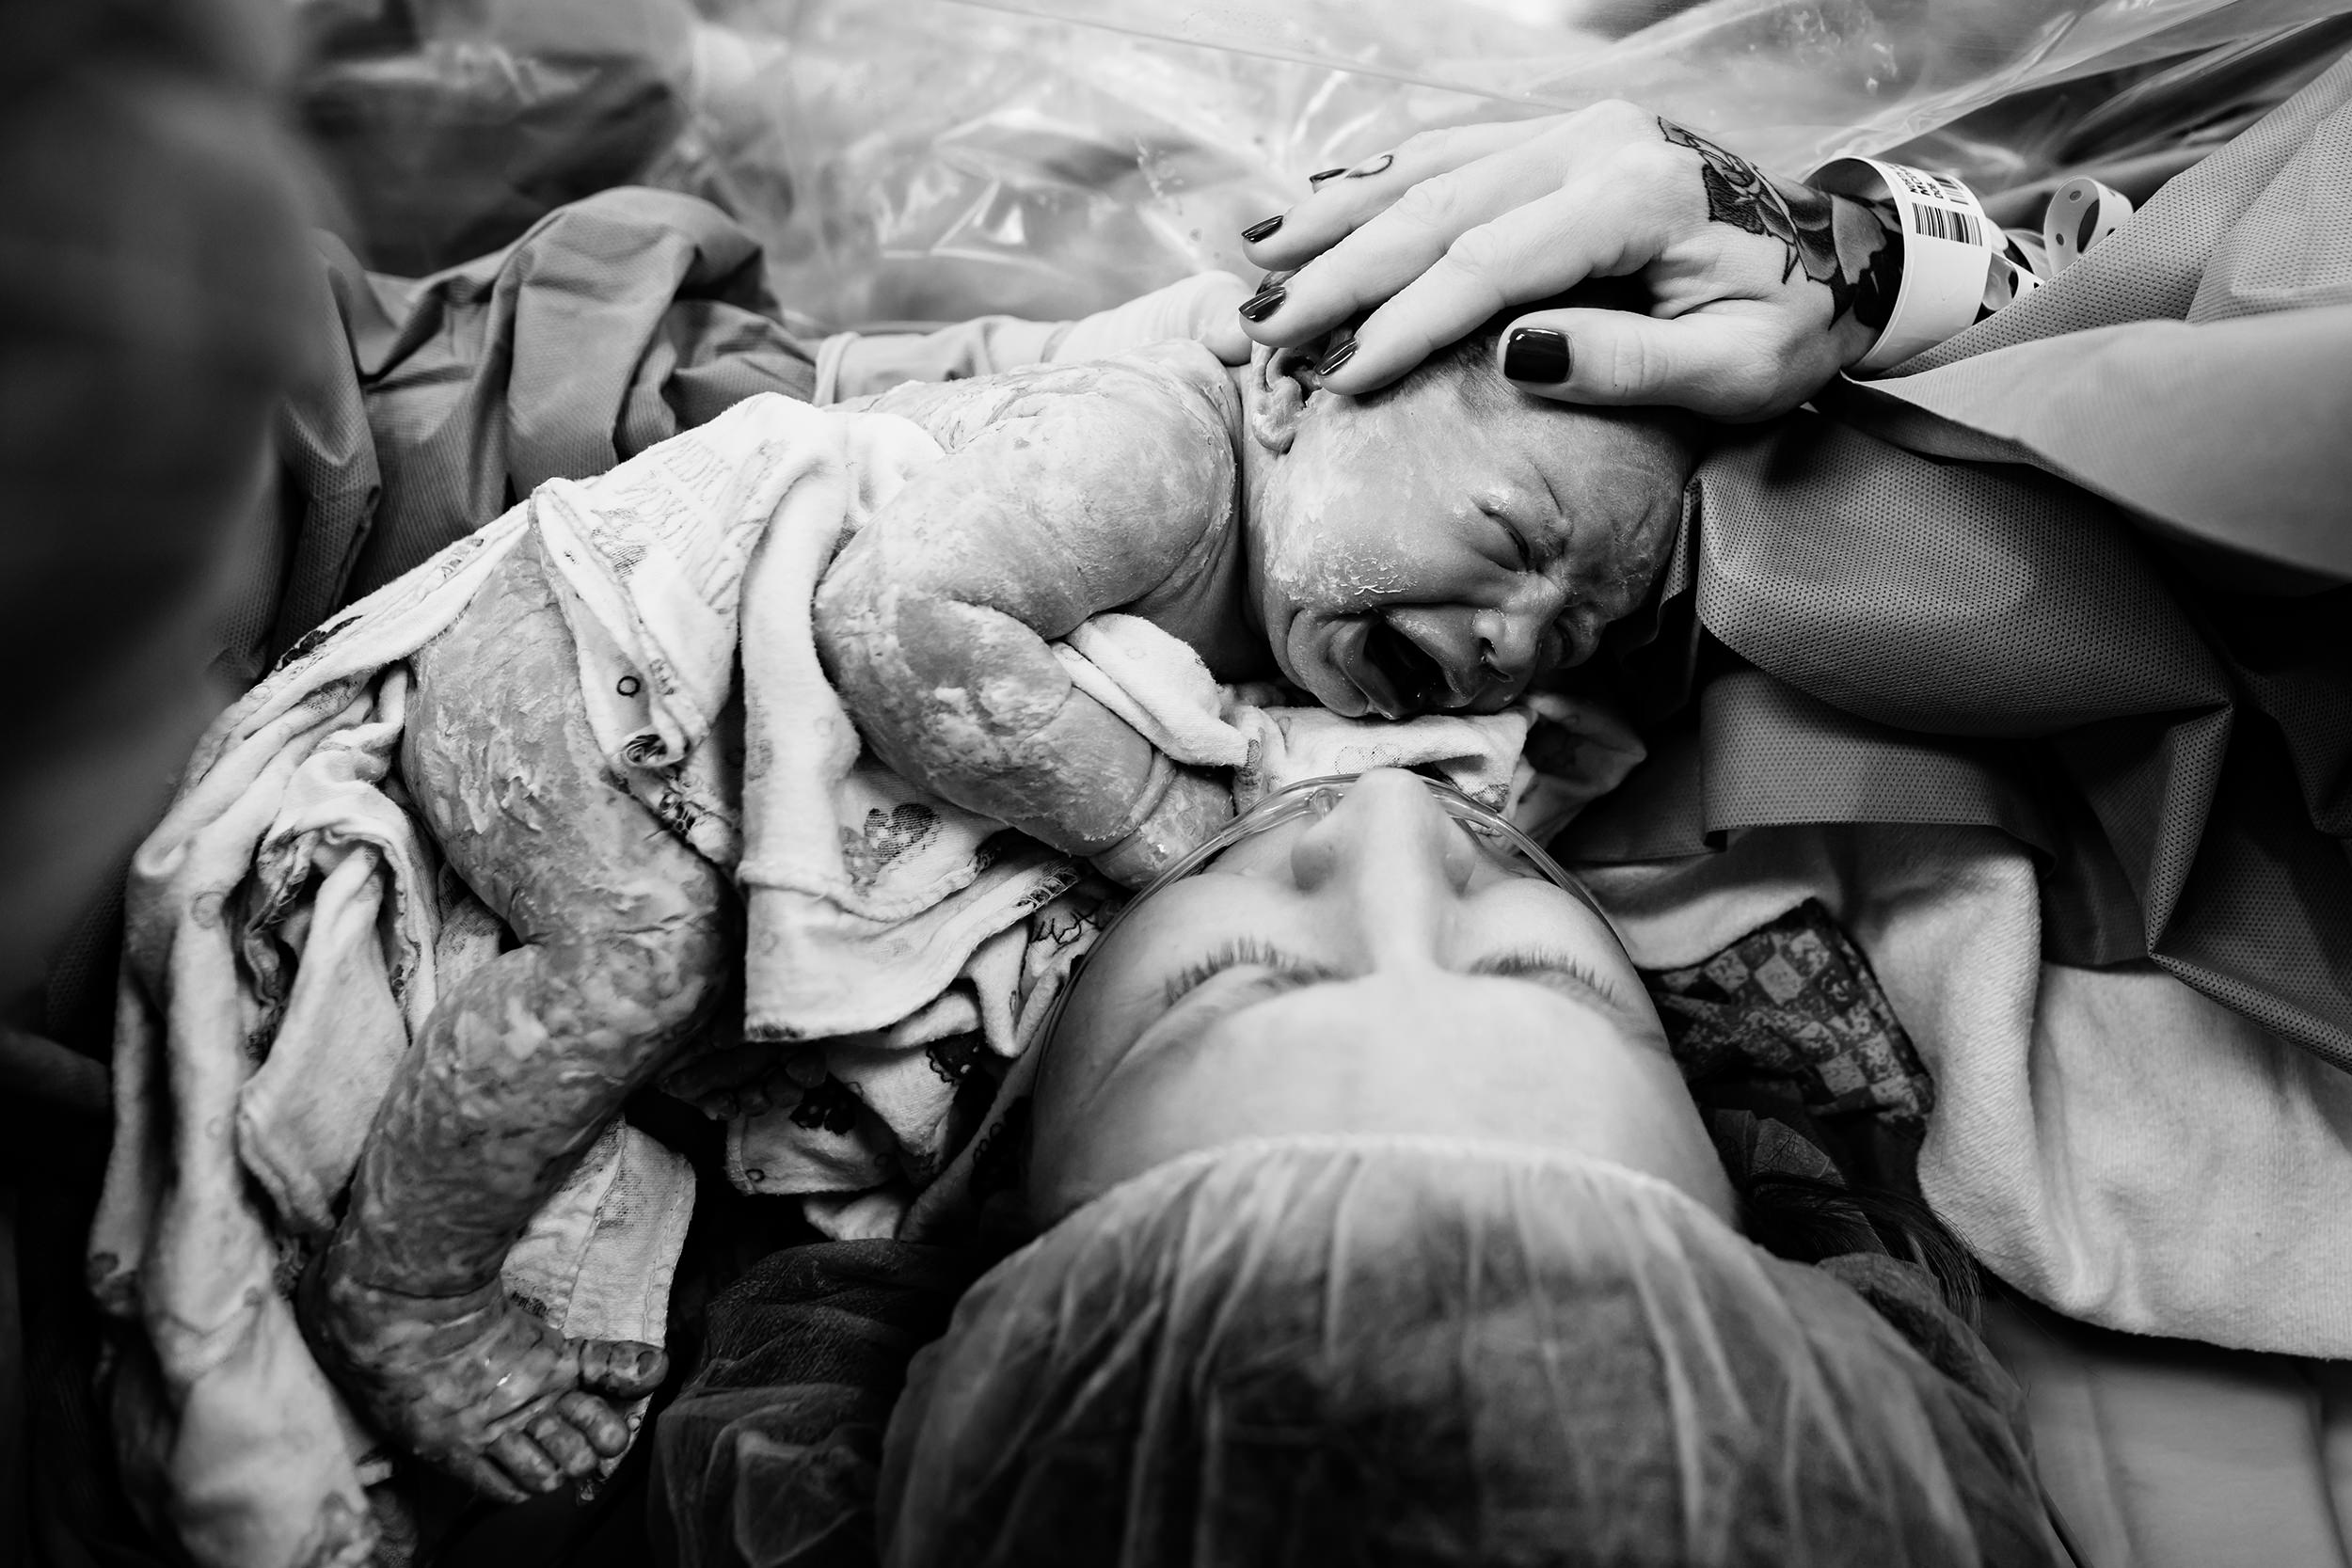 9-newborn-skin-to-skin-with-mom-in-operating-room-theatre-after-cesarean.jpg